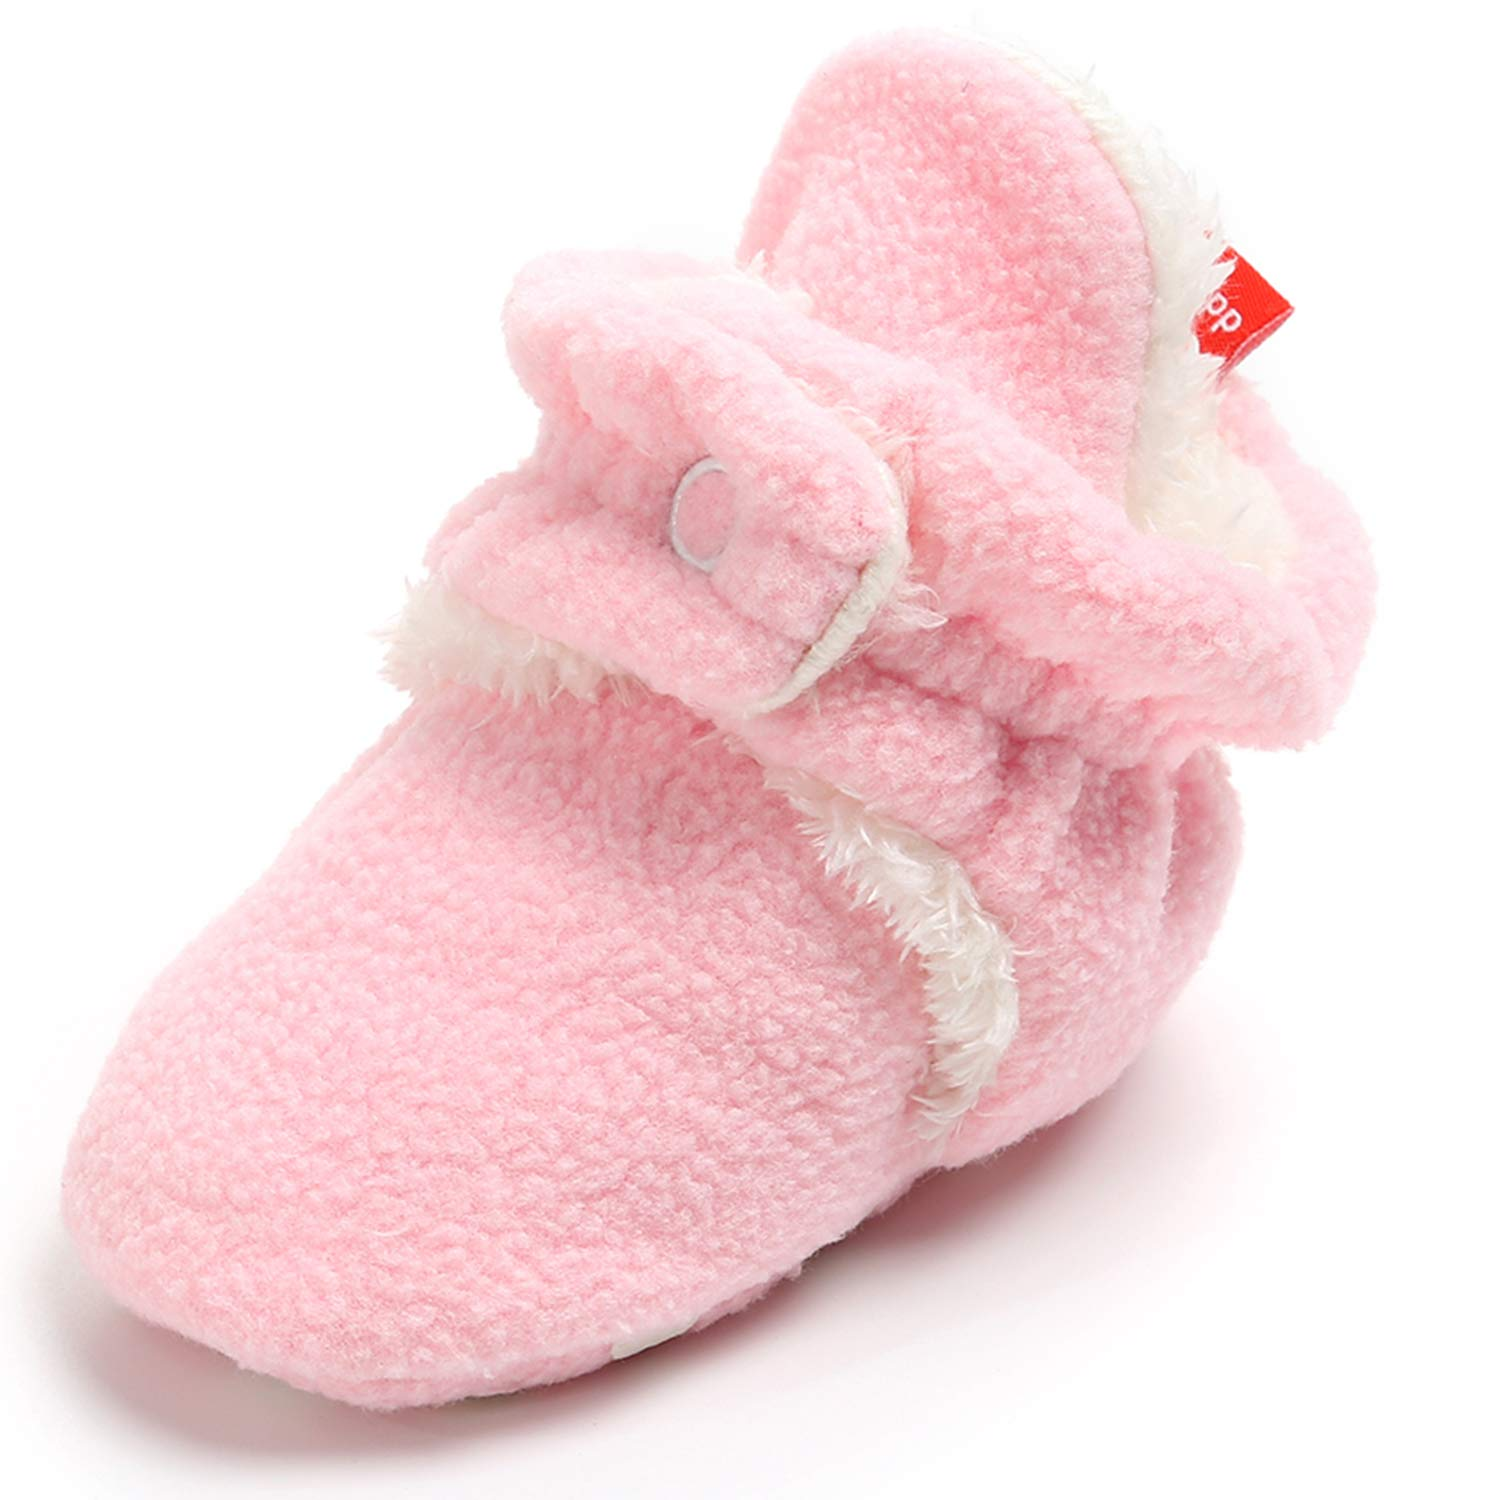 Garrein Newborn Baby Boys Girls Booties with Cozy Warm Fleece Non Skid Sole,Infant Toddler Snow Boots Sock Slipper Shoes